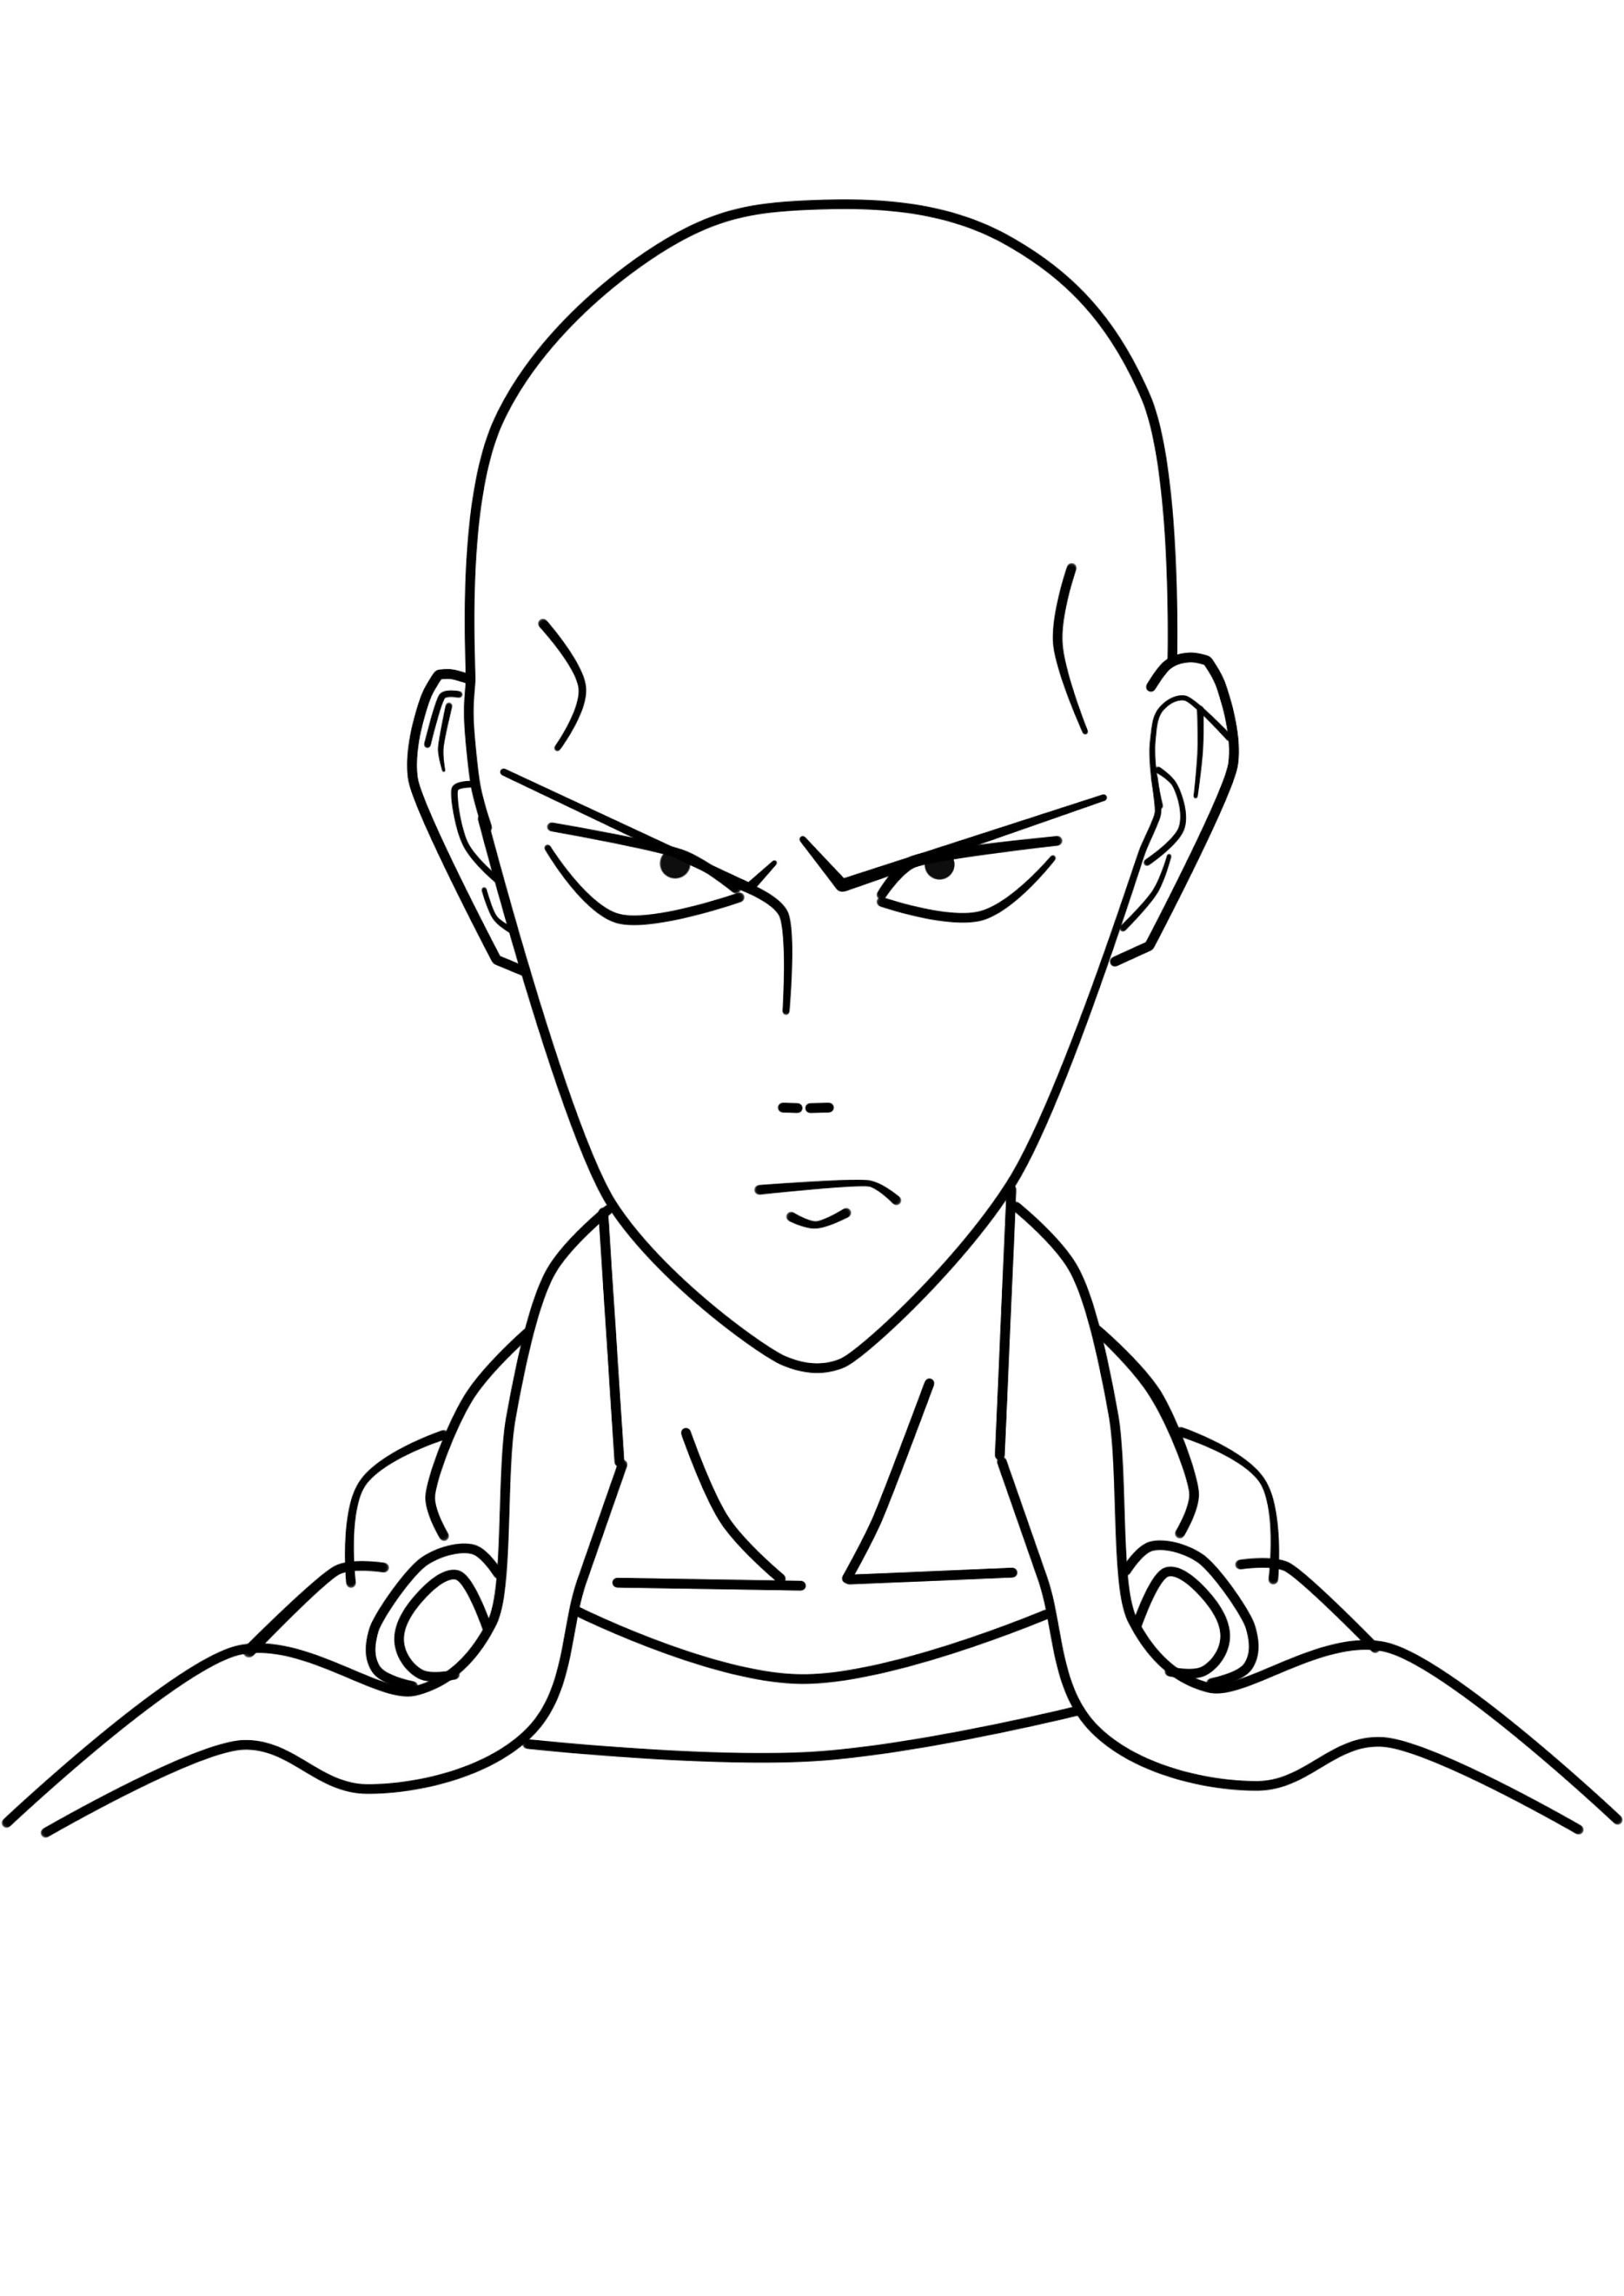 2235x3160 Simple Draw Saitama Painttool Sai For Beginner (With Mouse)